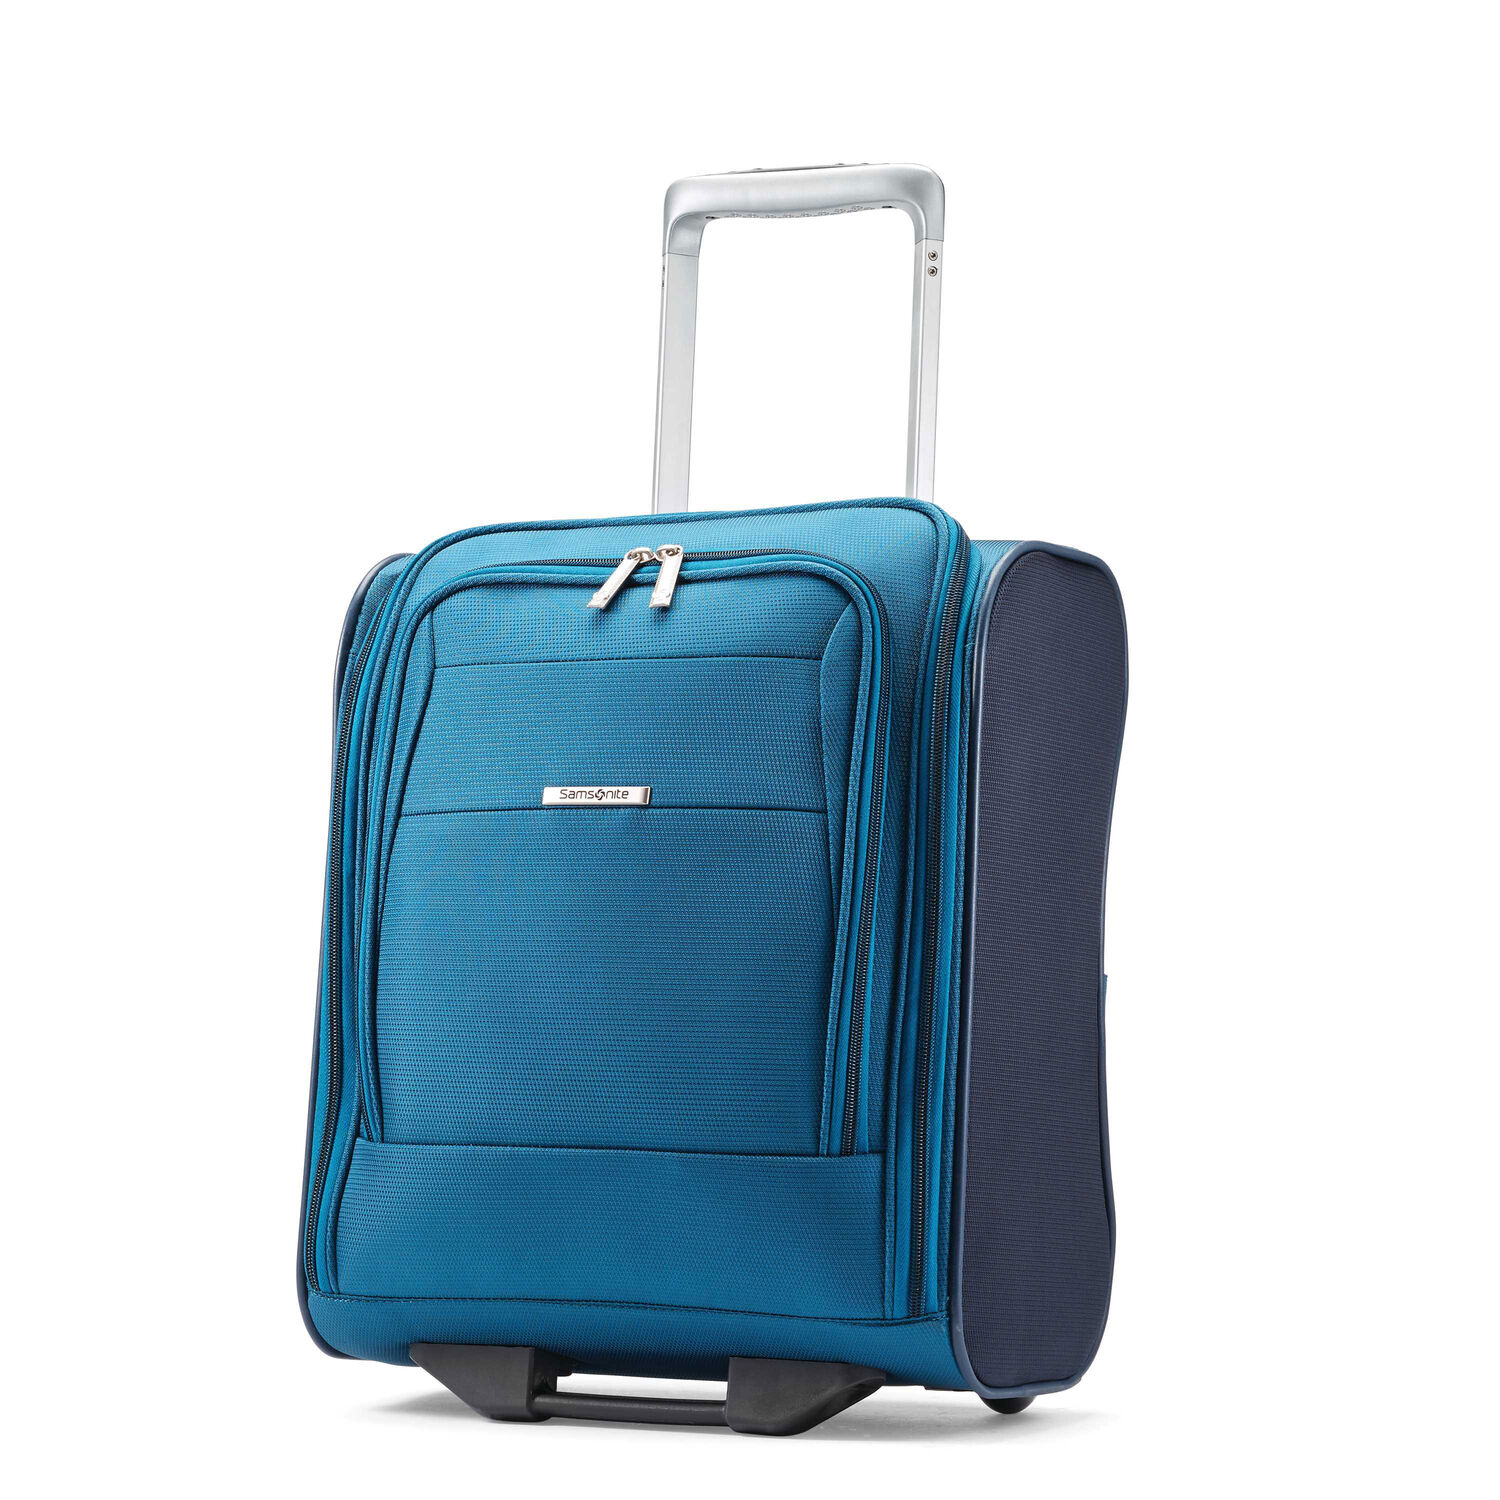 Samsonite Eco-Nu Wheeled Underseater Carry-On in the color Pacific Blue/Navy.